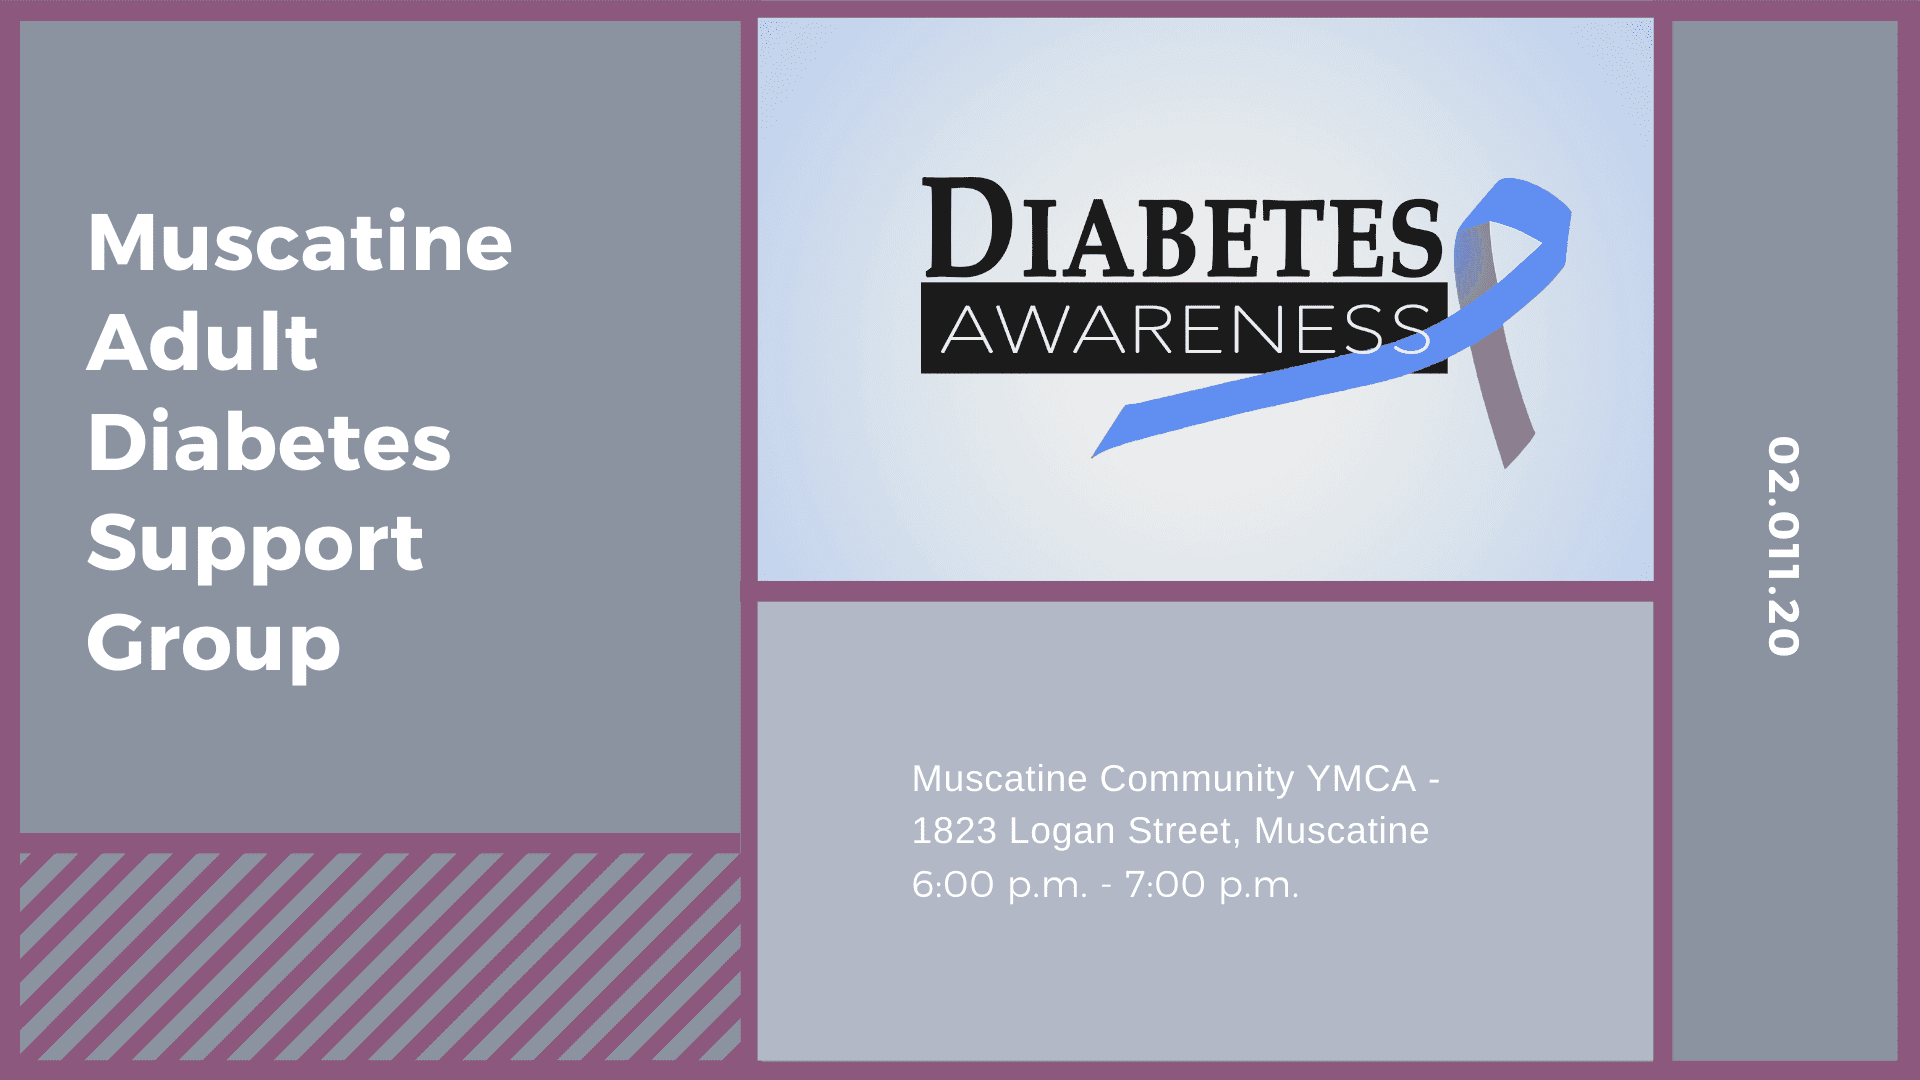 Muscatine Adult Diabetes Support Group